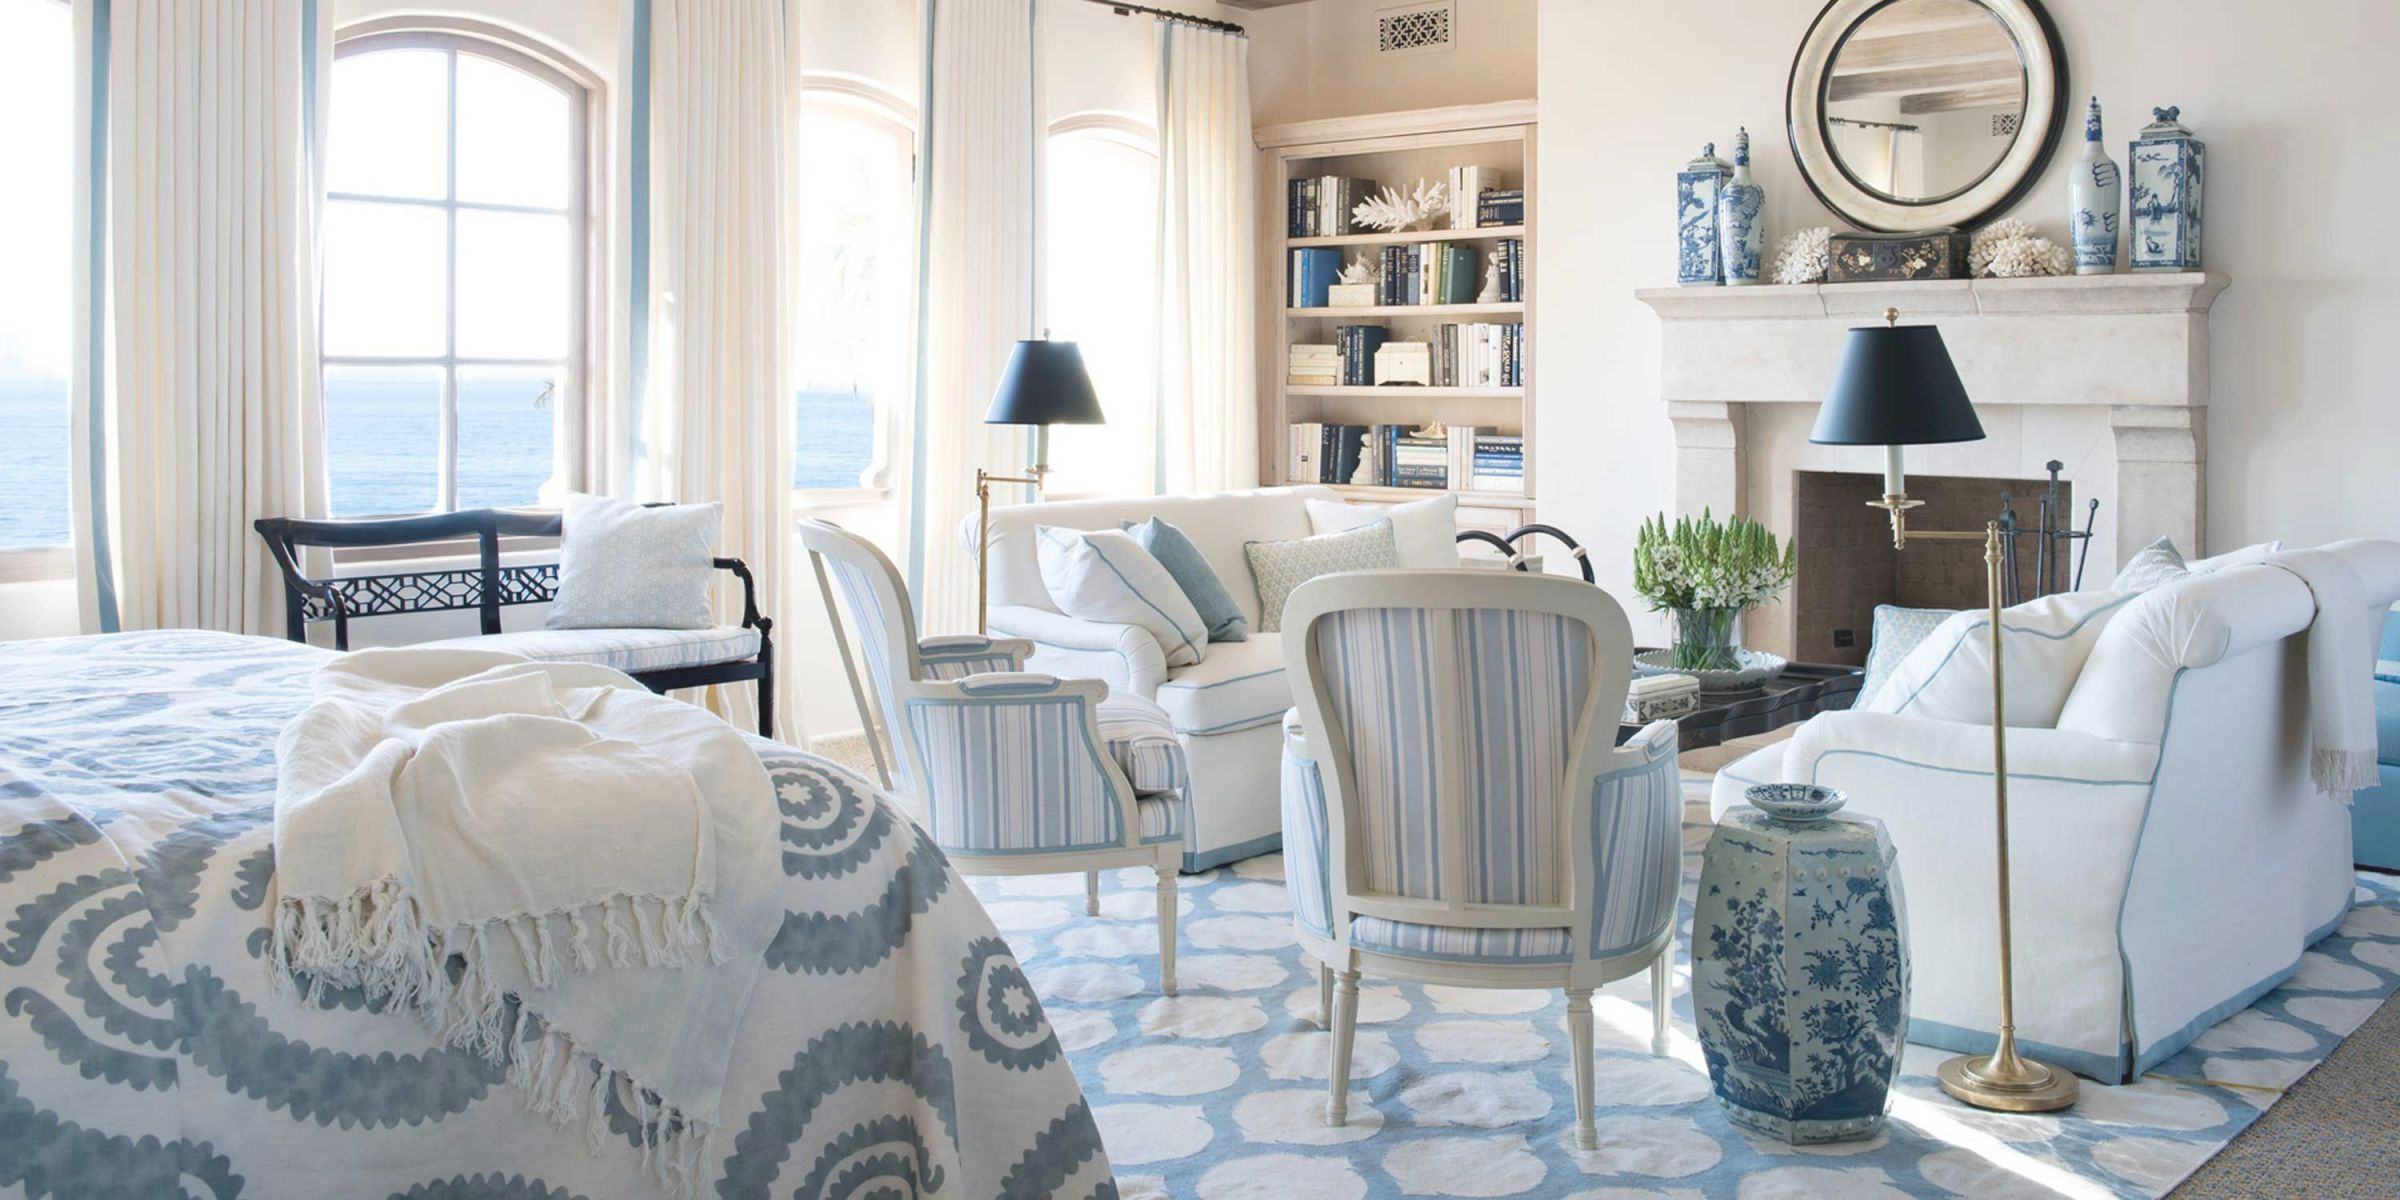 Blue And White Rooms – Decorating With Blue And White with Bedroom Decorating Ideas Grey And White